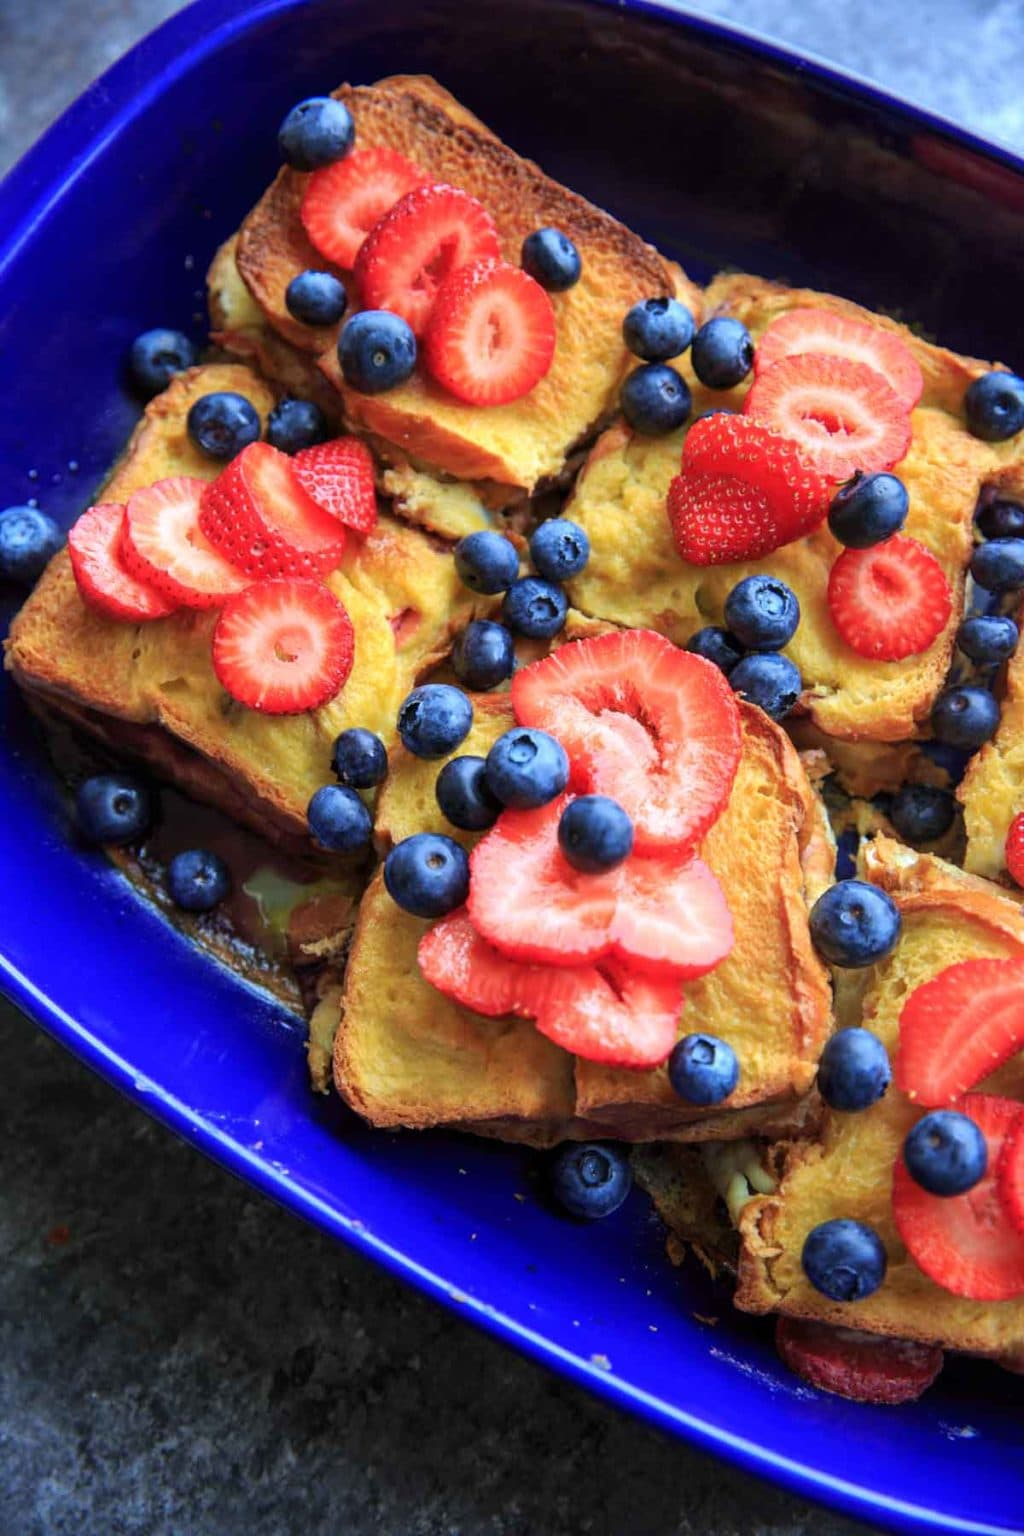 Summer Berry Stuffed French Toast Casserole Bake. Stuffed with cream cheese, fruit jam, strawberries and blueberries and topped with more berries! Serve with a sprinkle of powdered sugar and/or maple syrup if desired. Breakfast or brunch is served!